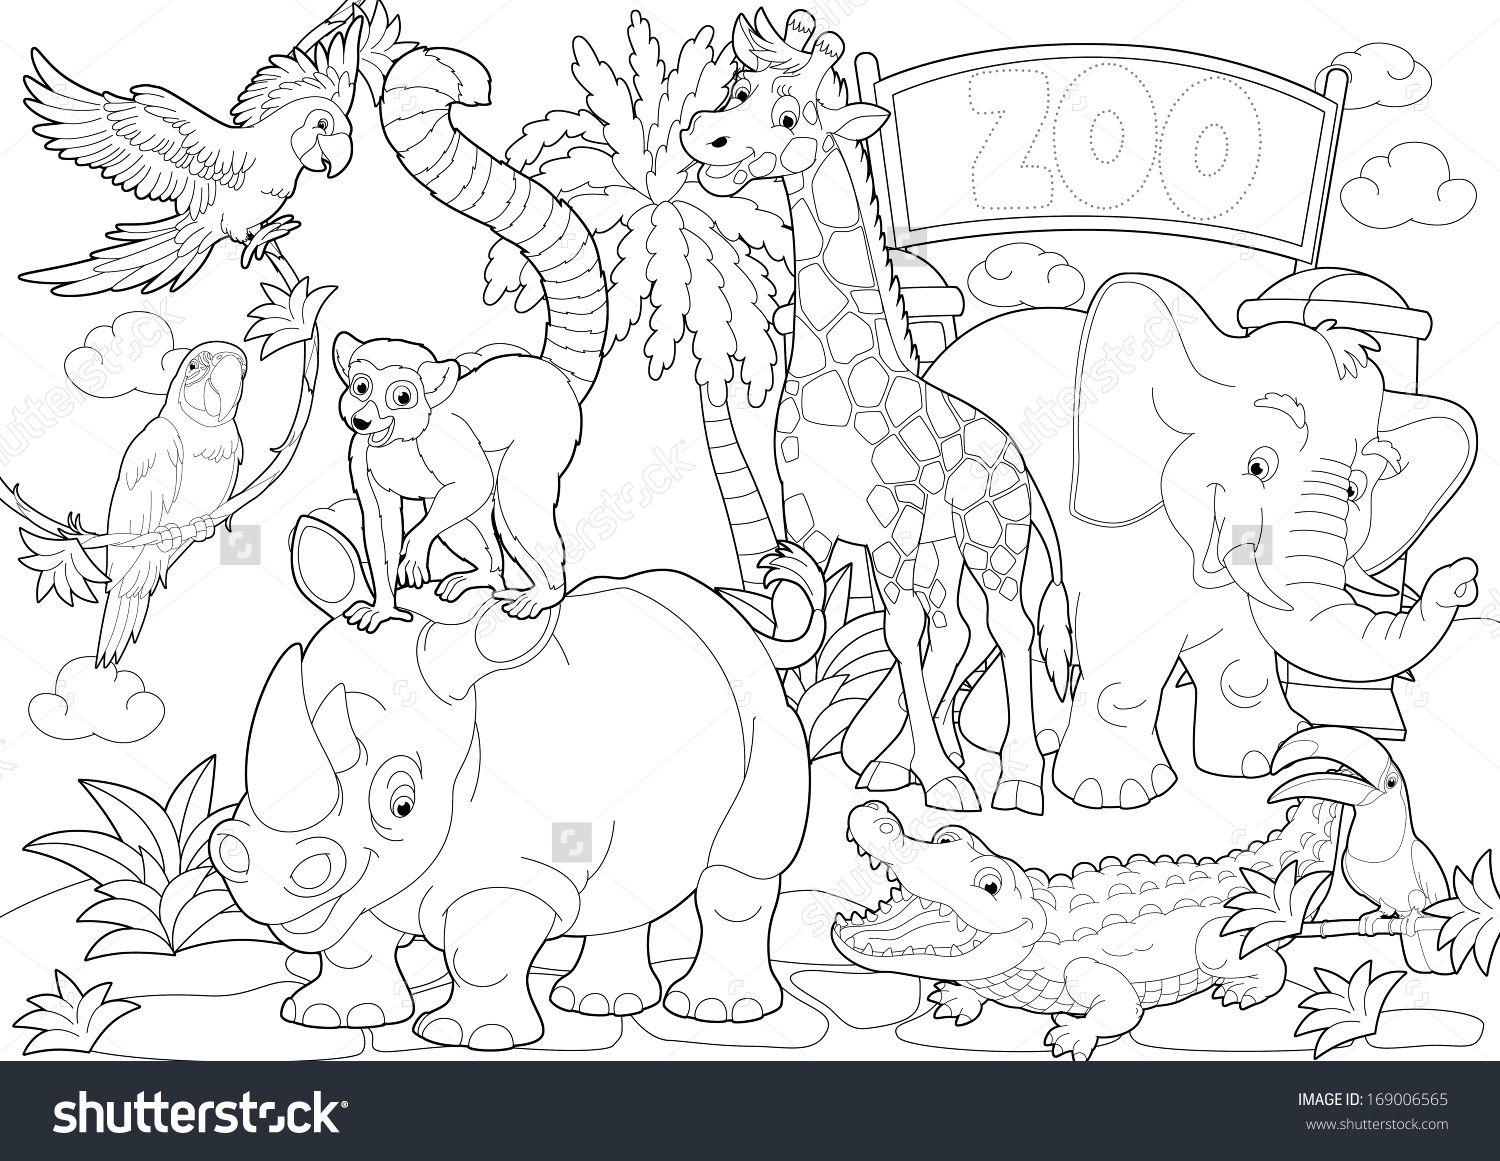 Ausmalbilder Playmobil Zoo : Zoos Coloring Pages Worksheet Coloring Pages